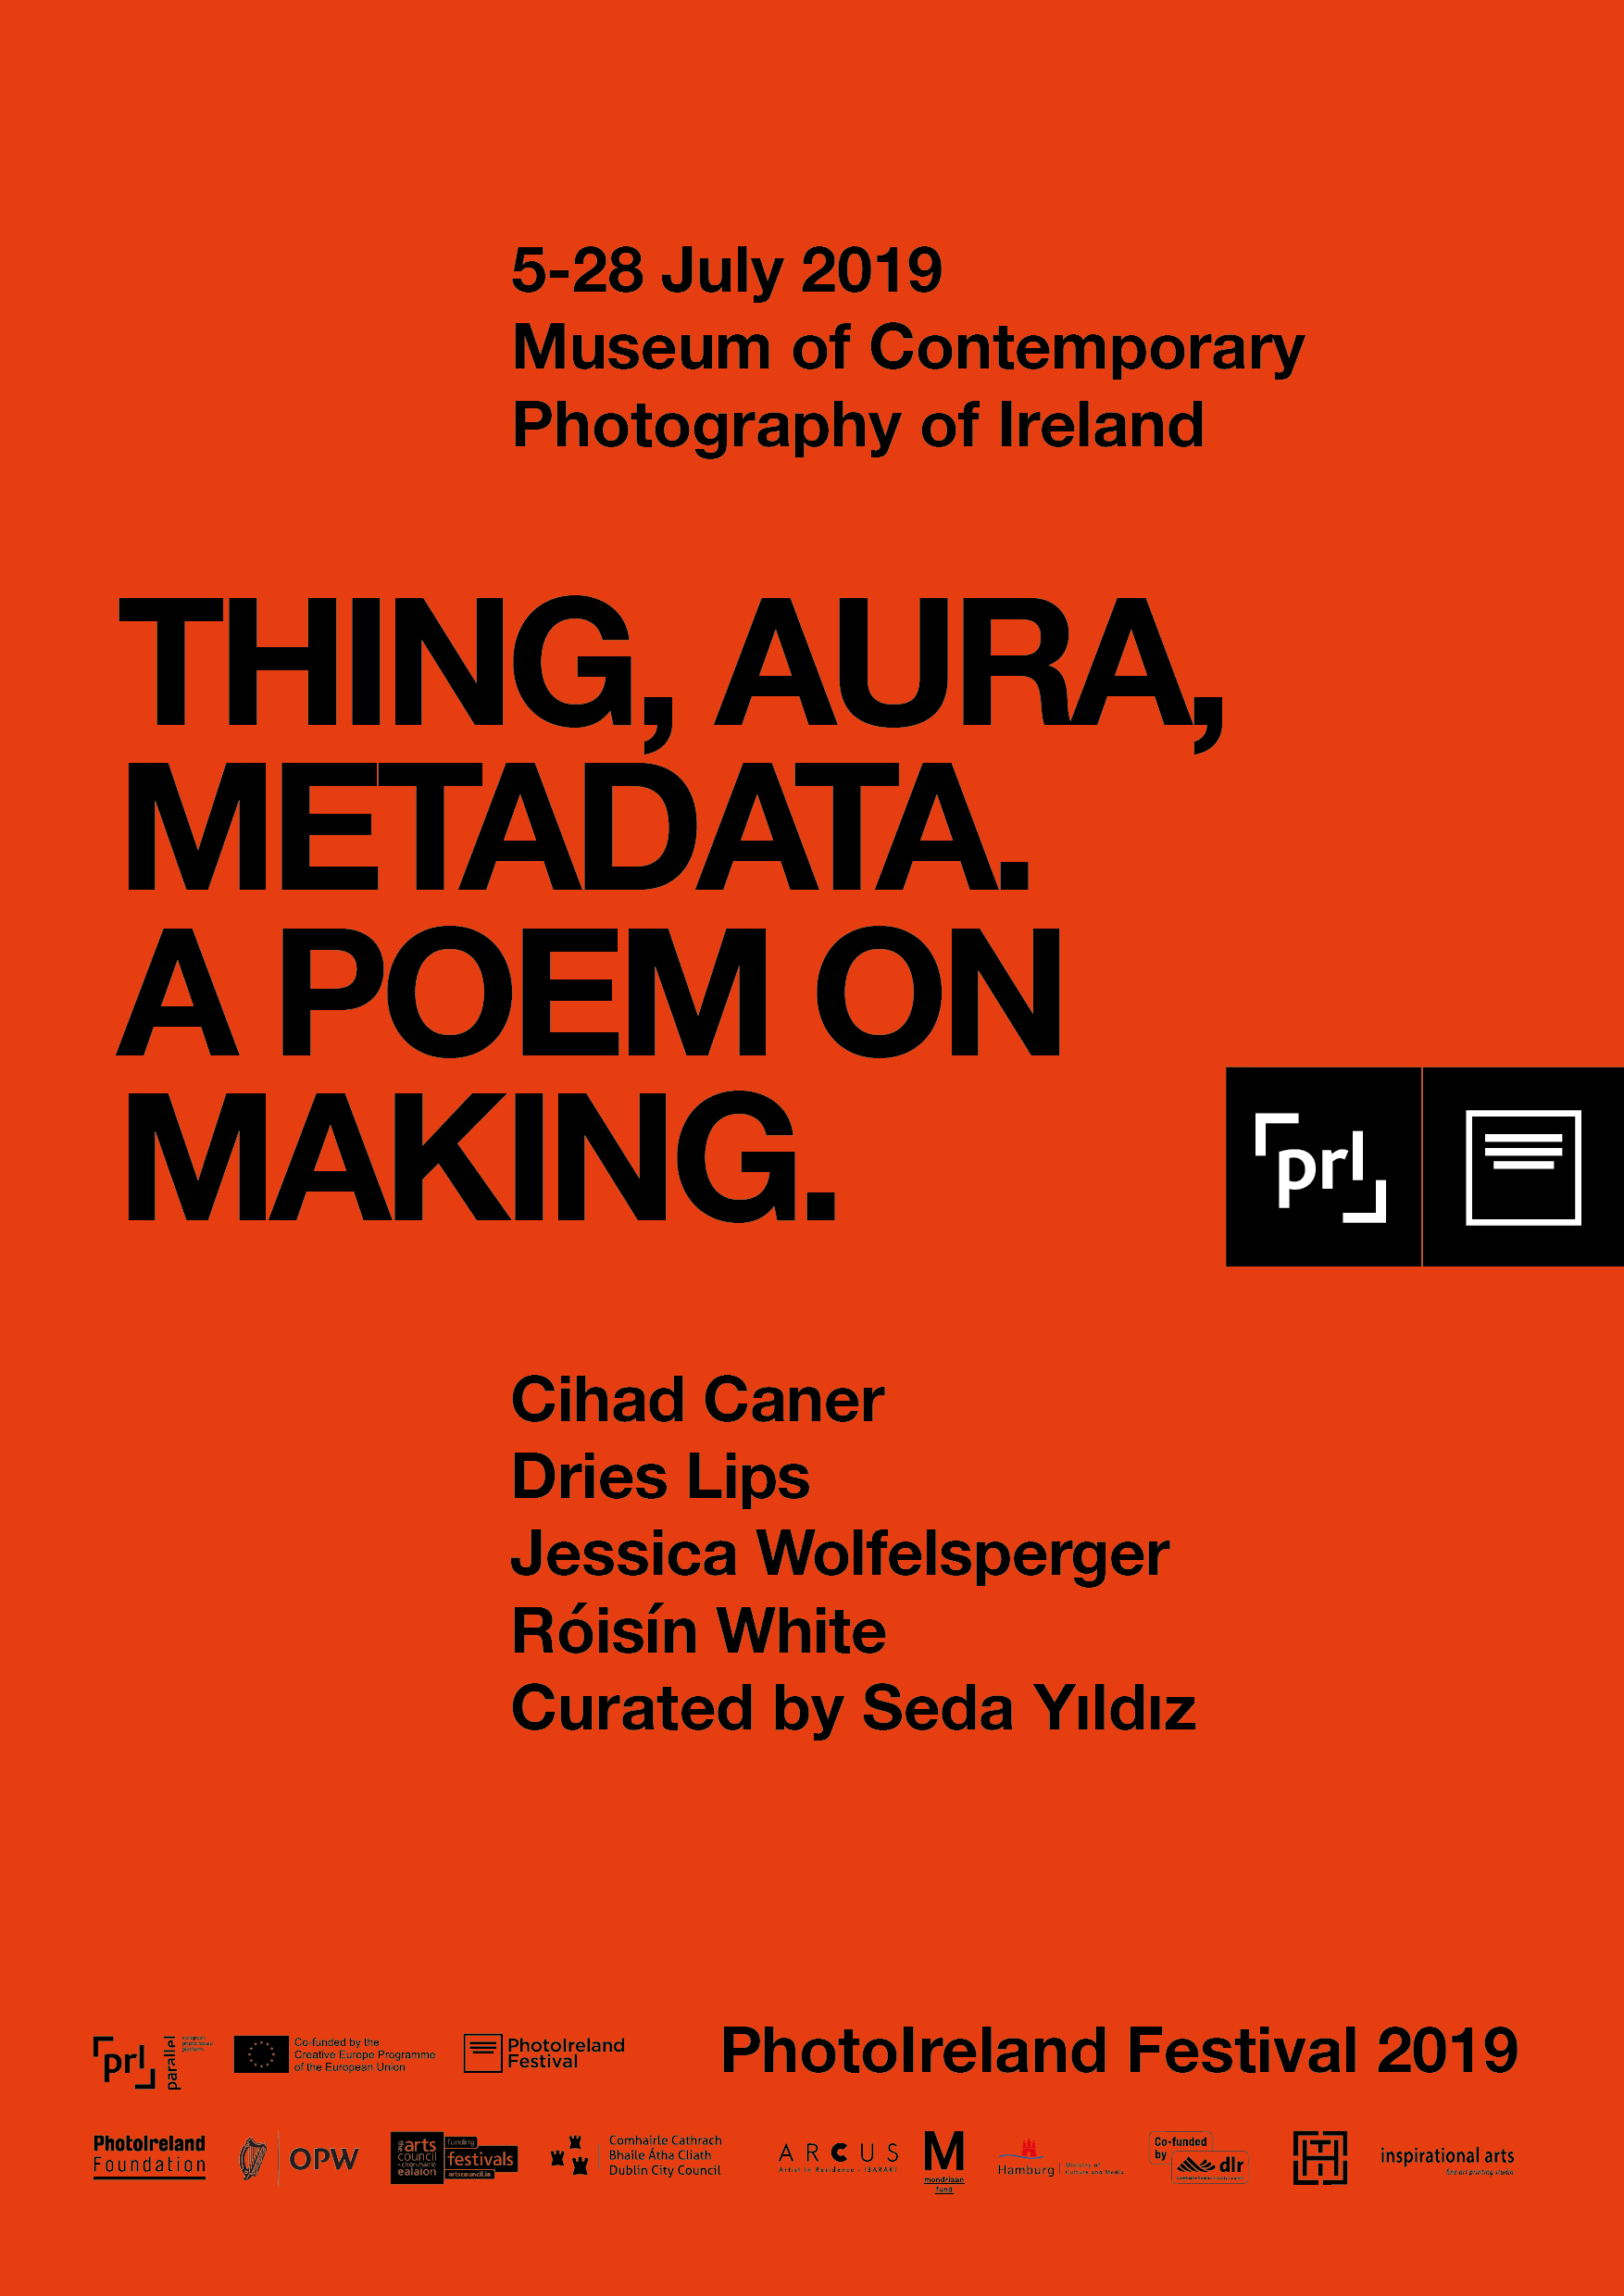 thing, aura, metadata. A poem on making.